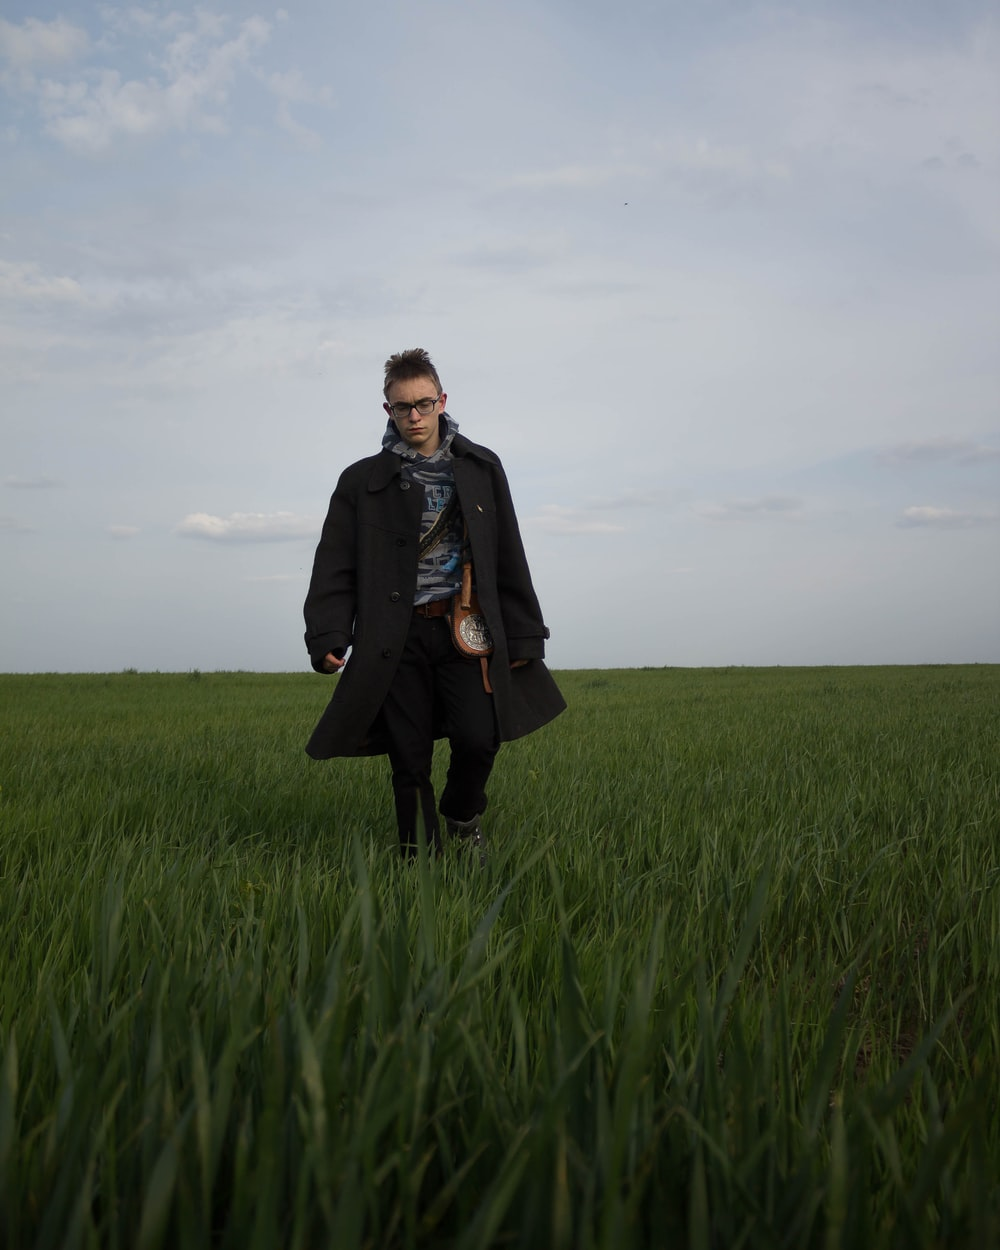 woman in black coat standing on green grass field under gray cloudy sky during daytime